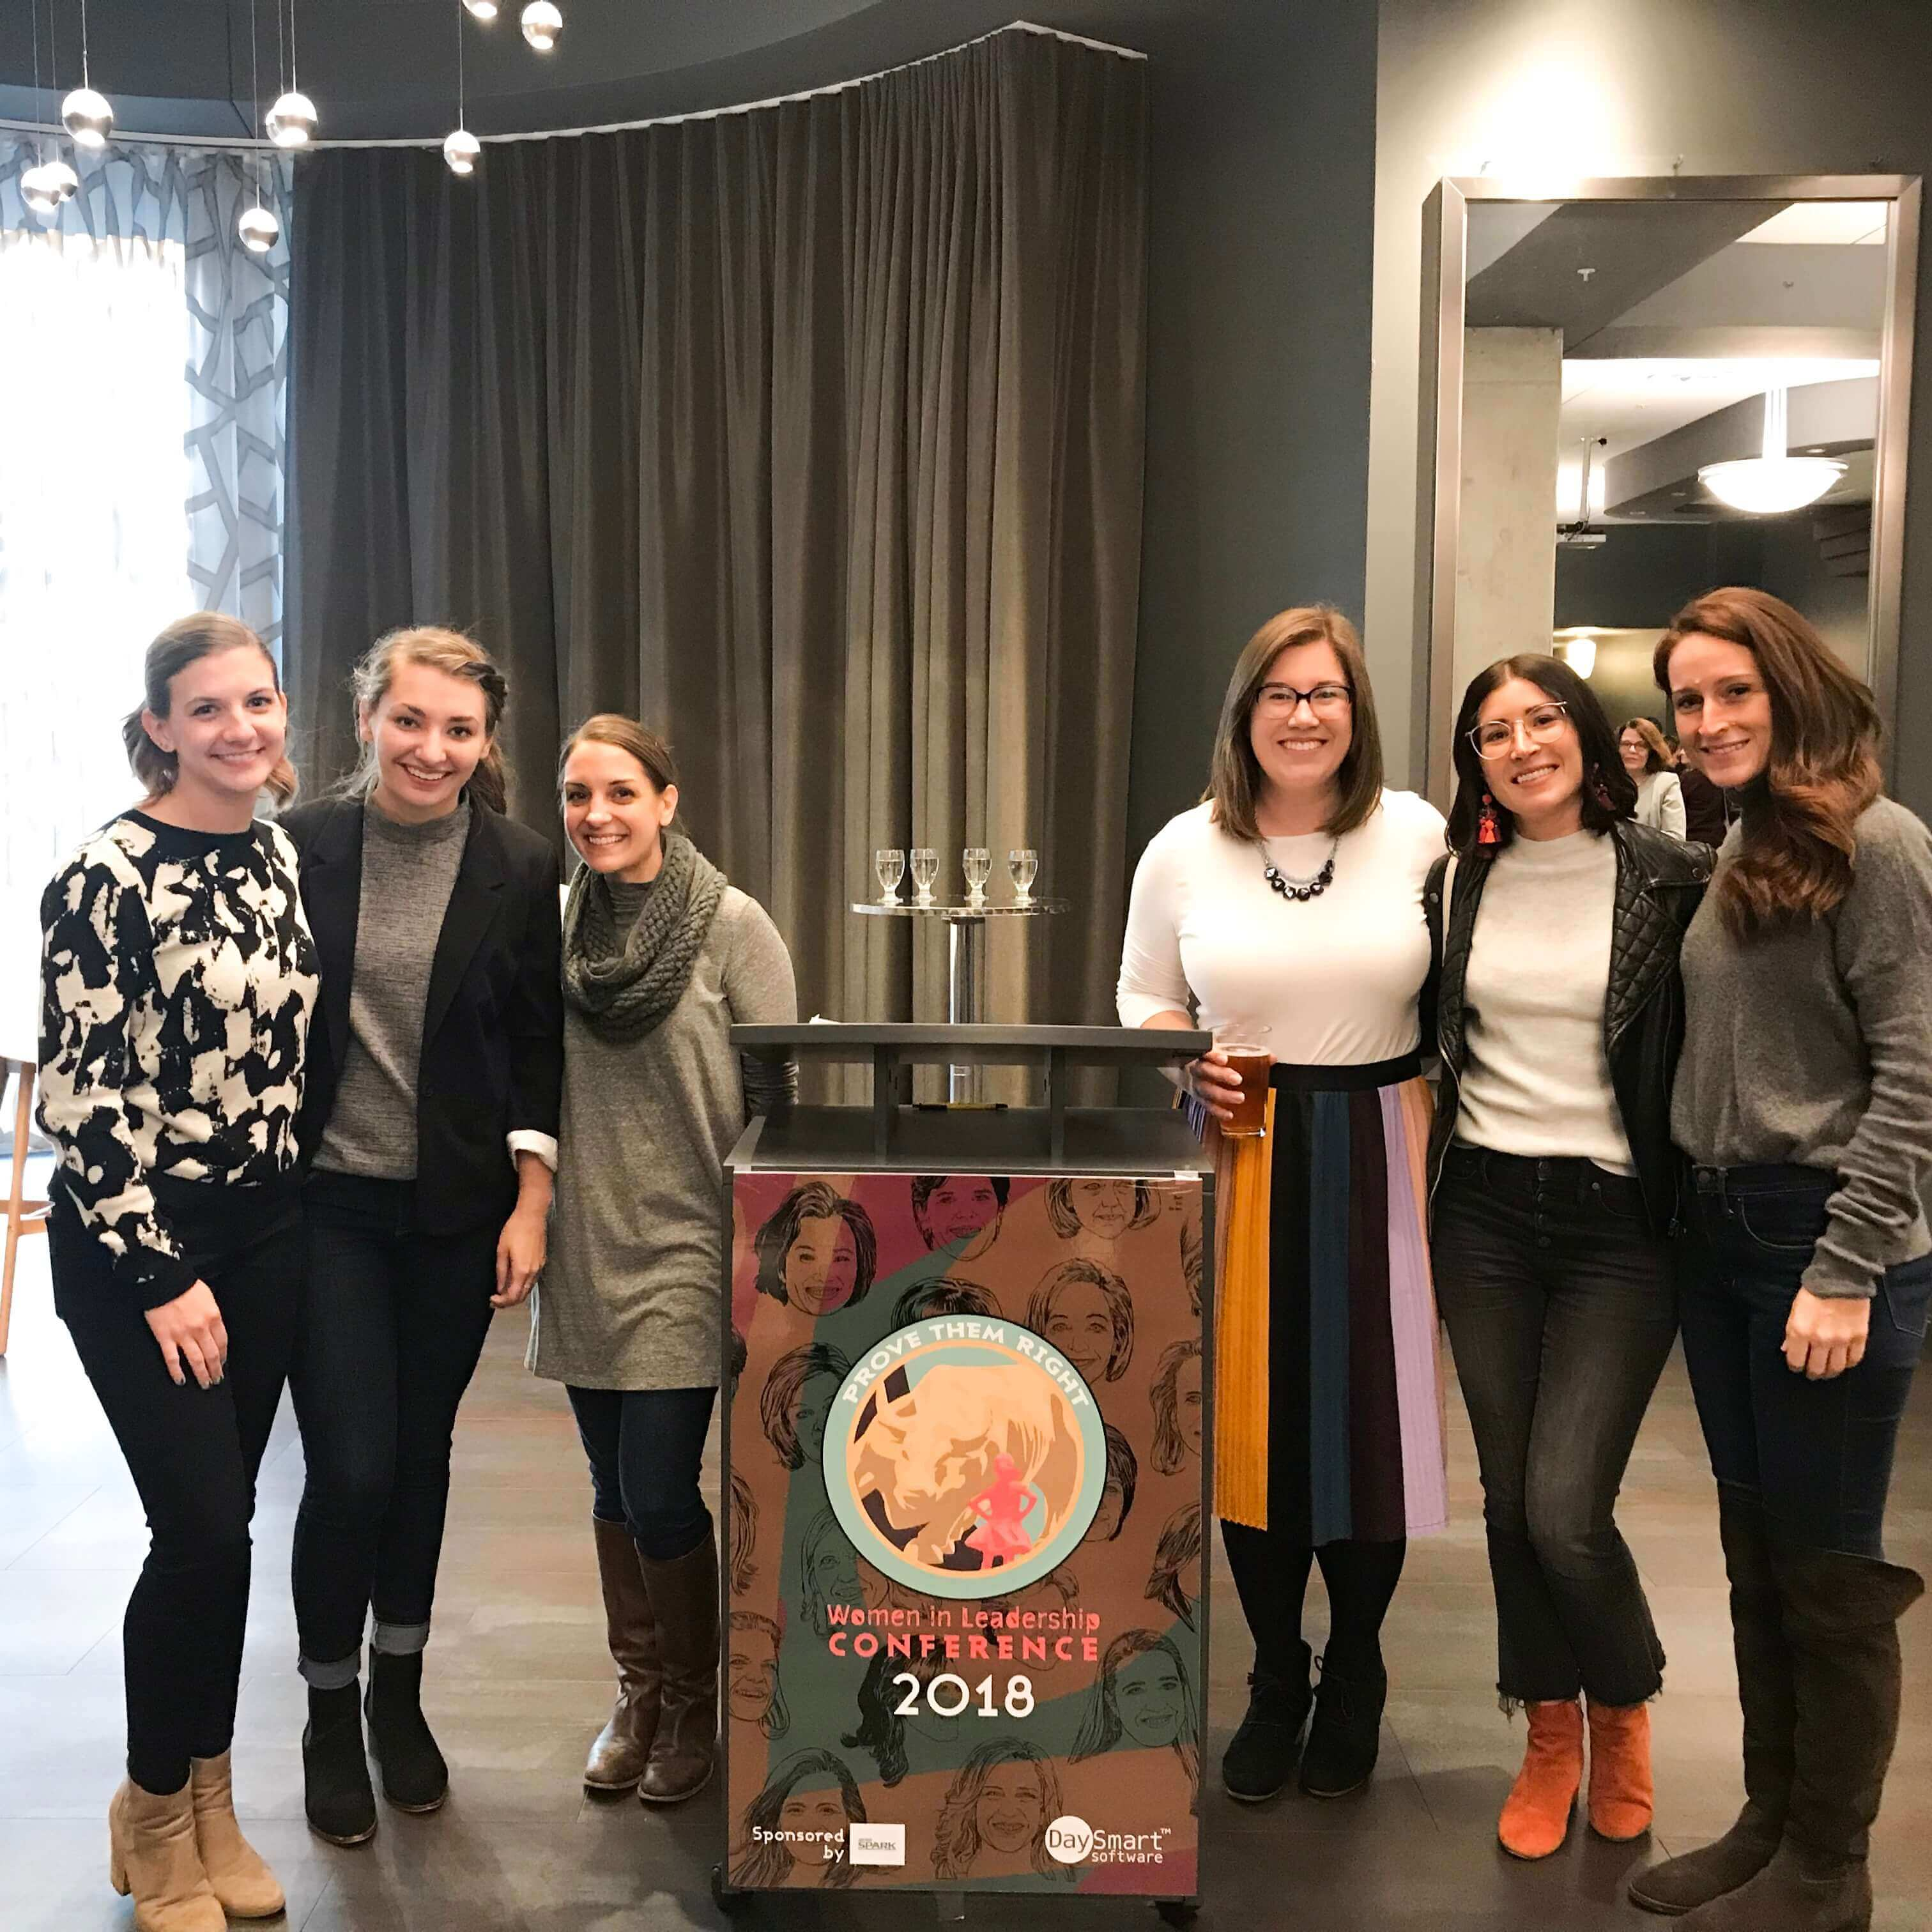 Kristen Violetta, Maria Newton, Andi Nank, Marissa, McIntire, Grace Winkel, and Stephanie Lucido at the Women in Leadership Conference 2018